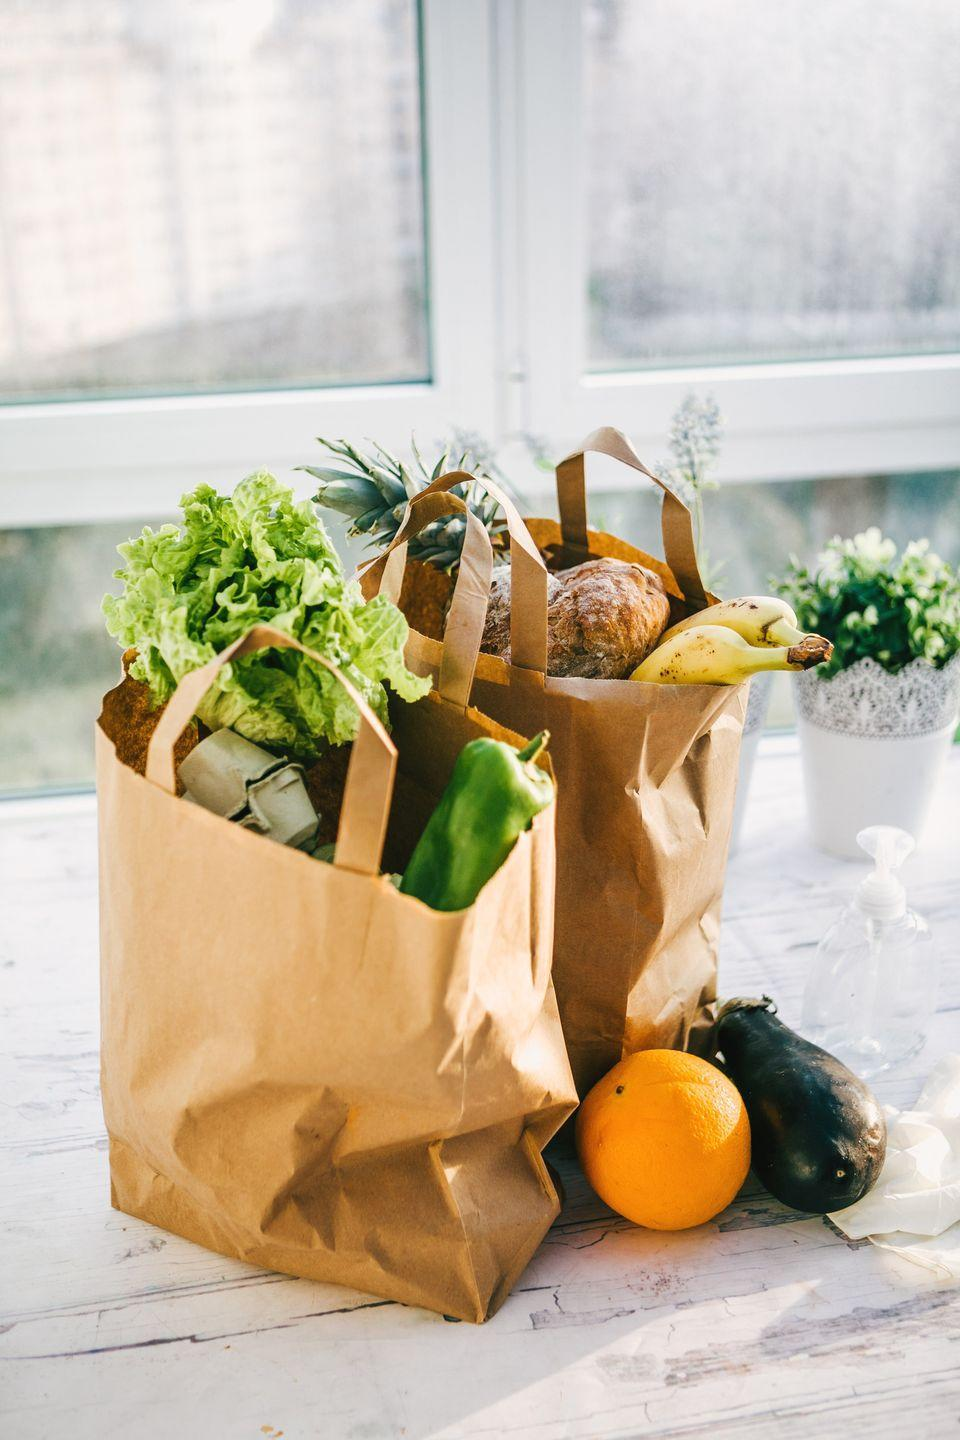 """<p>Amazon is now part of the grocery game, but there are still some delivery systems that <a href=""""https://gigsdoneright.com/amazon-fresh-vs-instacart/"""" rel=""""nofollow noopener"""" target=""""_blank"""" data-ylk=""""slk:outrank the retail giant"""" class=""""link rapid-noclick-resp"""">outrank the retail giant</a>. Instacart, for example, has more store partnerships than Amazon, which leads to wider product availability, and it doesn't charge fees for same-day delivery.</p>"""